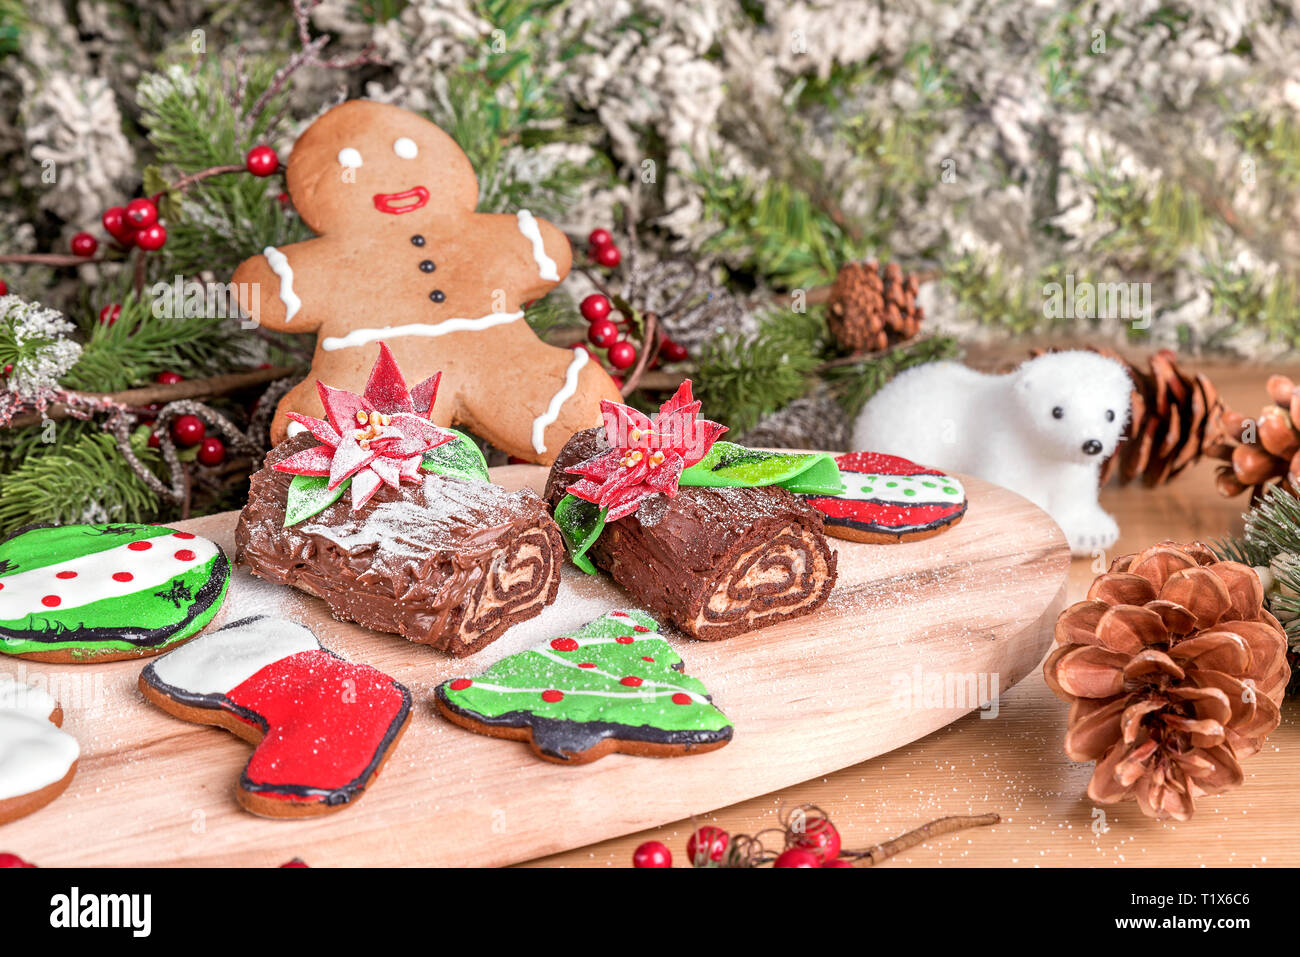 Different Type Of Christmas Cookies Served On A Wood Board With